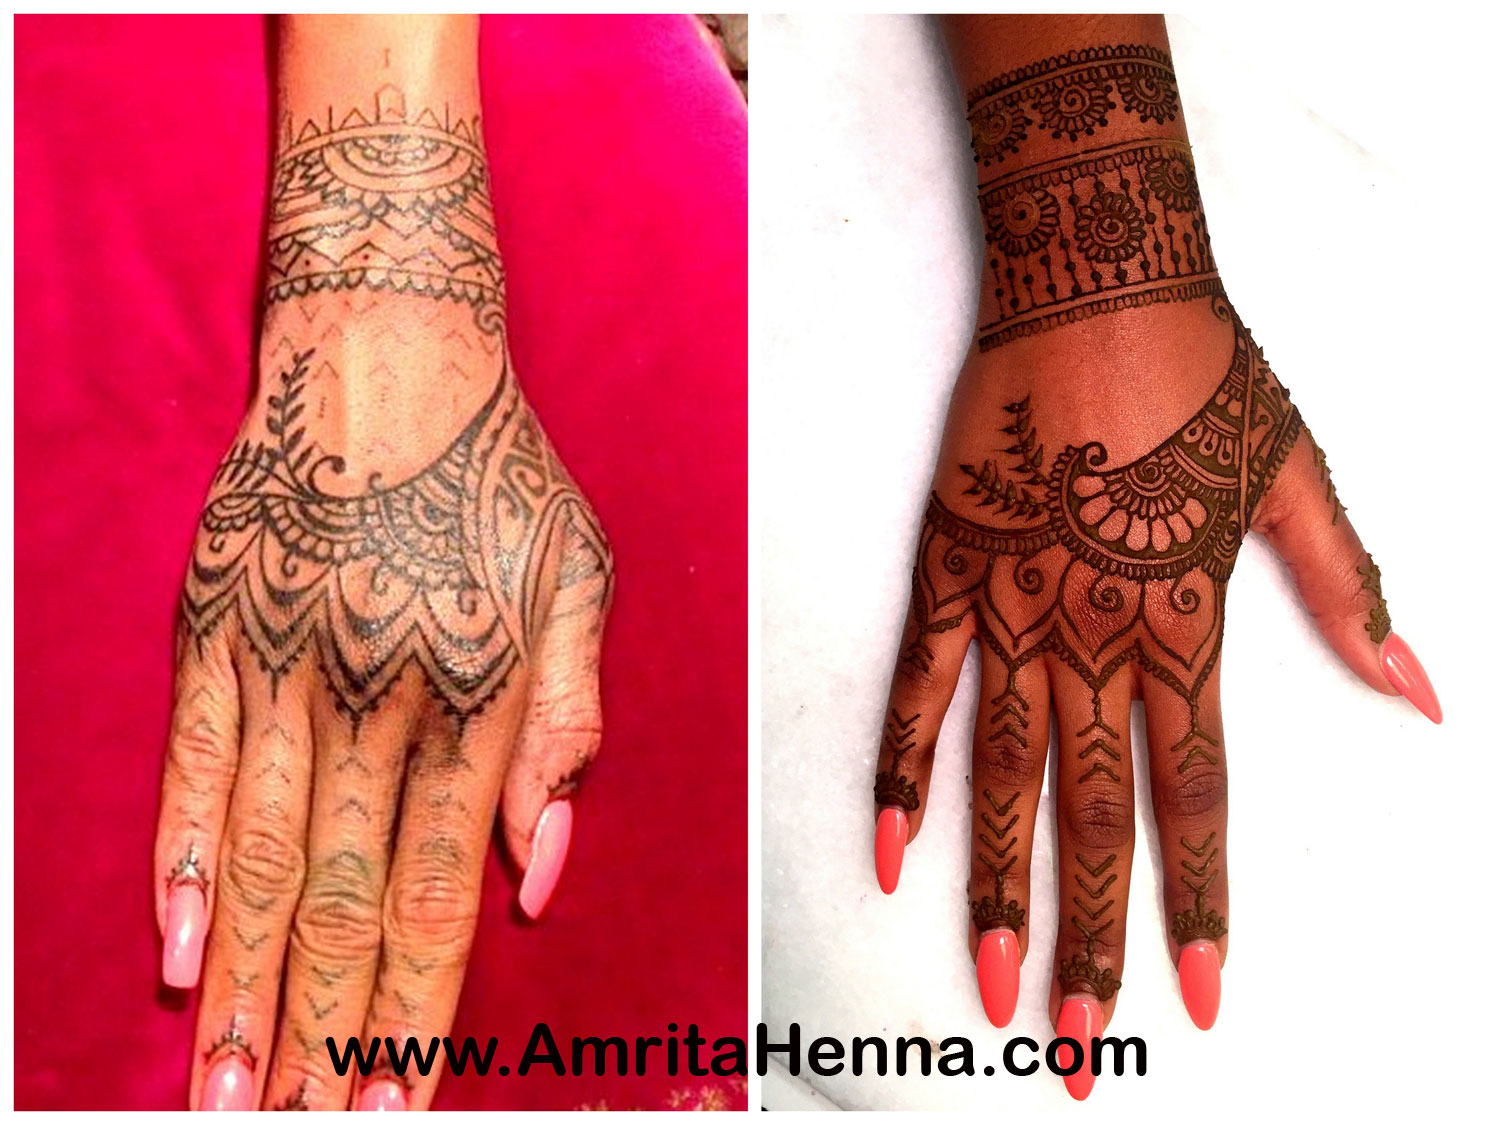 Real tattoos that look like henna